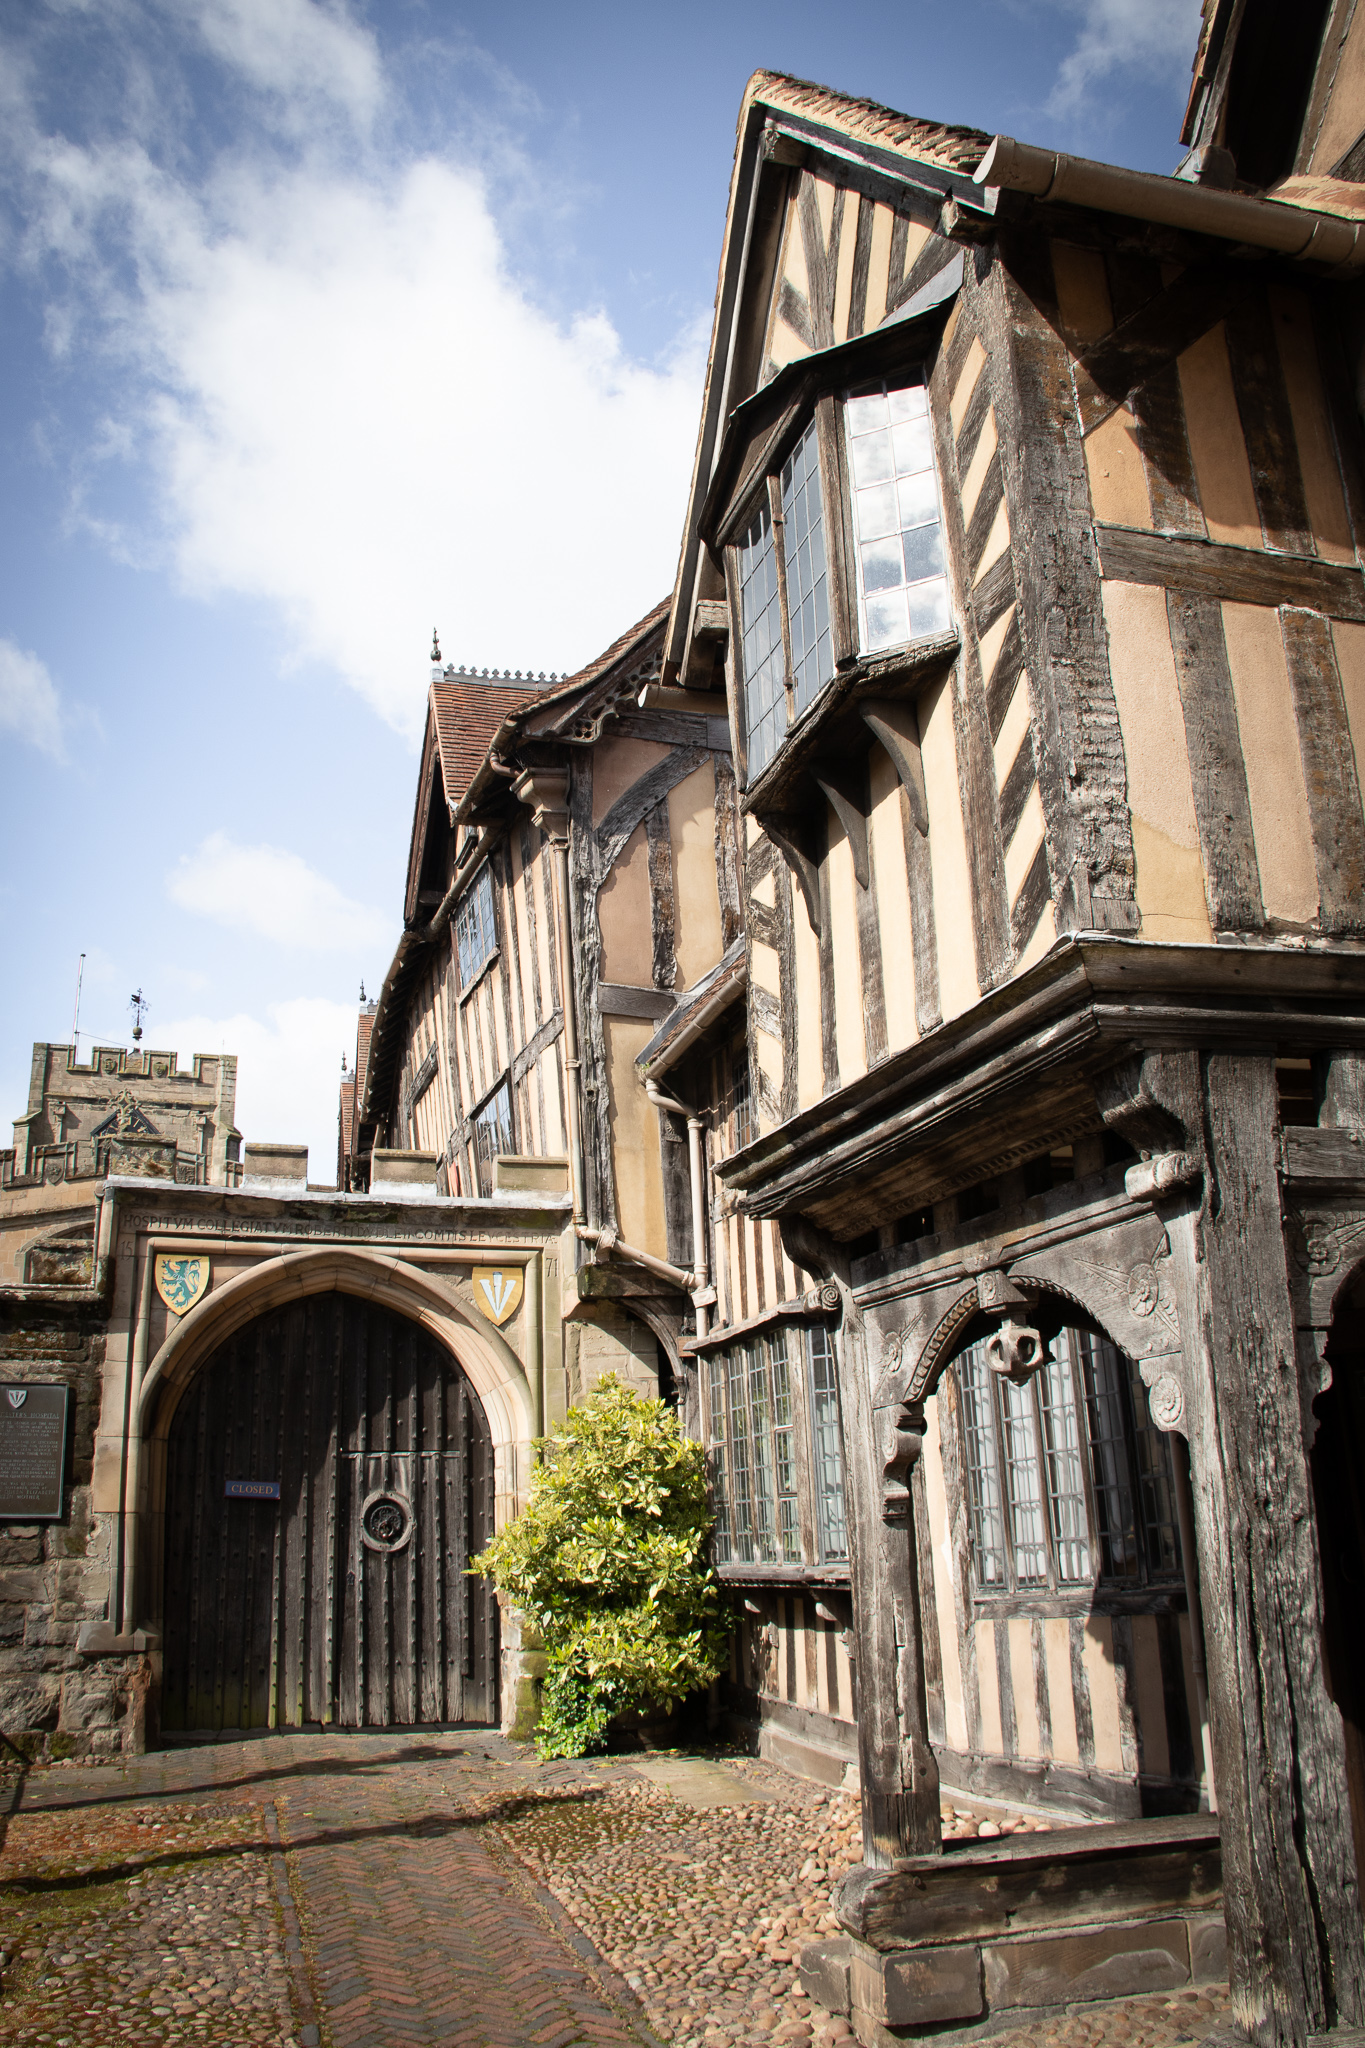 The Lord Leycester Hospital is one of the oldest buildings in Warwick. It's know as being one of the best examples of medieval courtyard architecture.